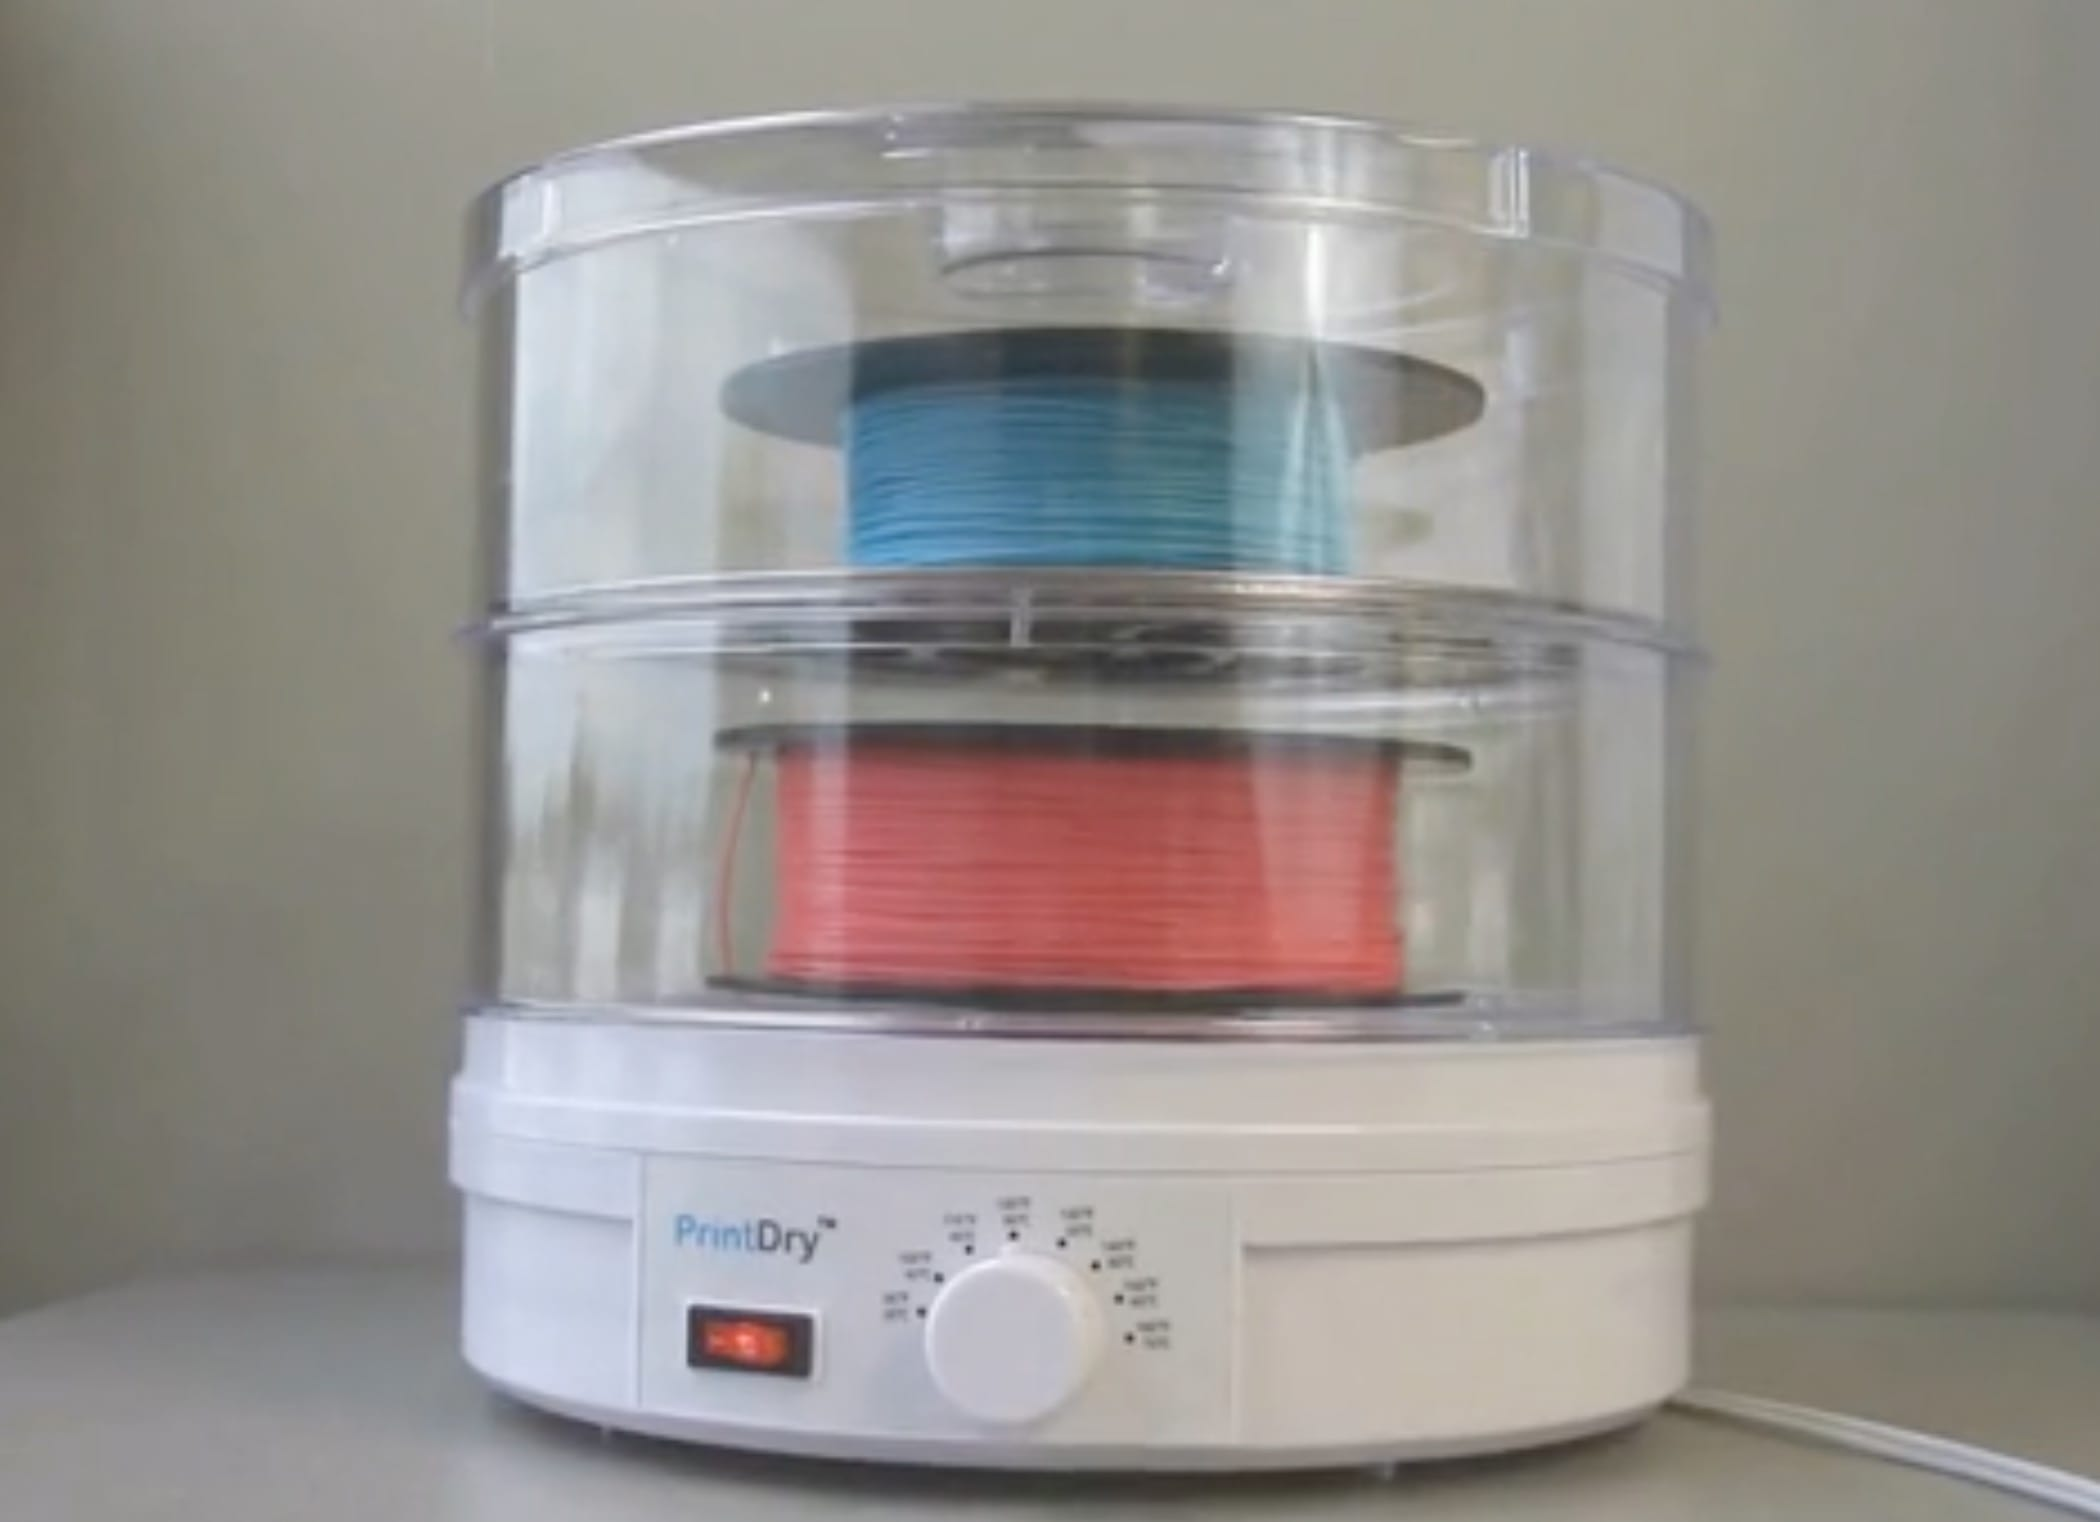 The PrintDry, a filament-drying 3D printing accessory